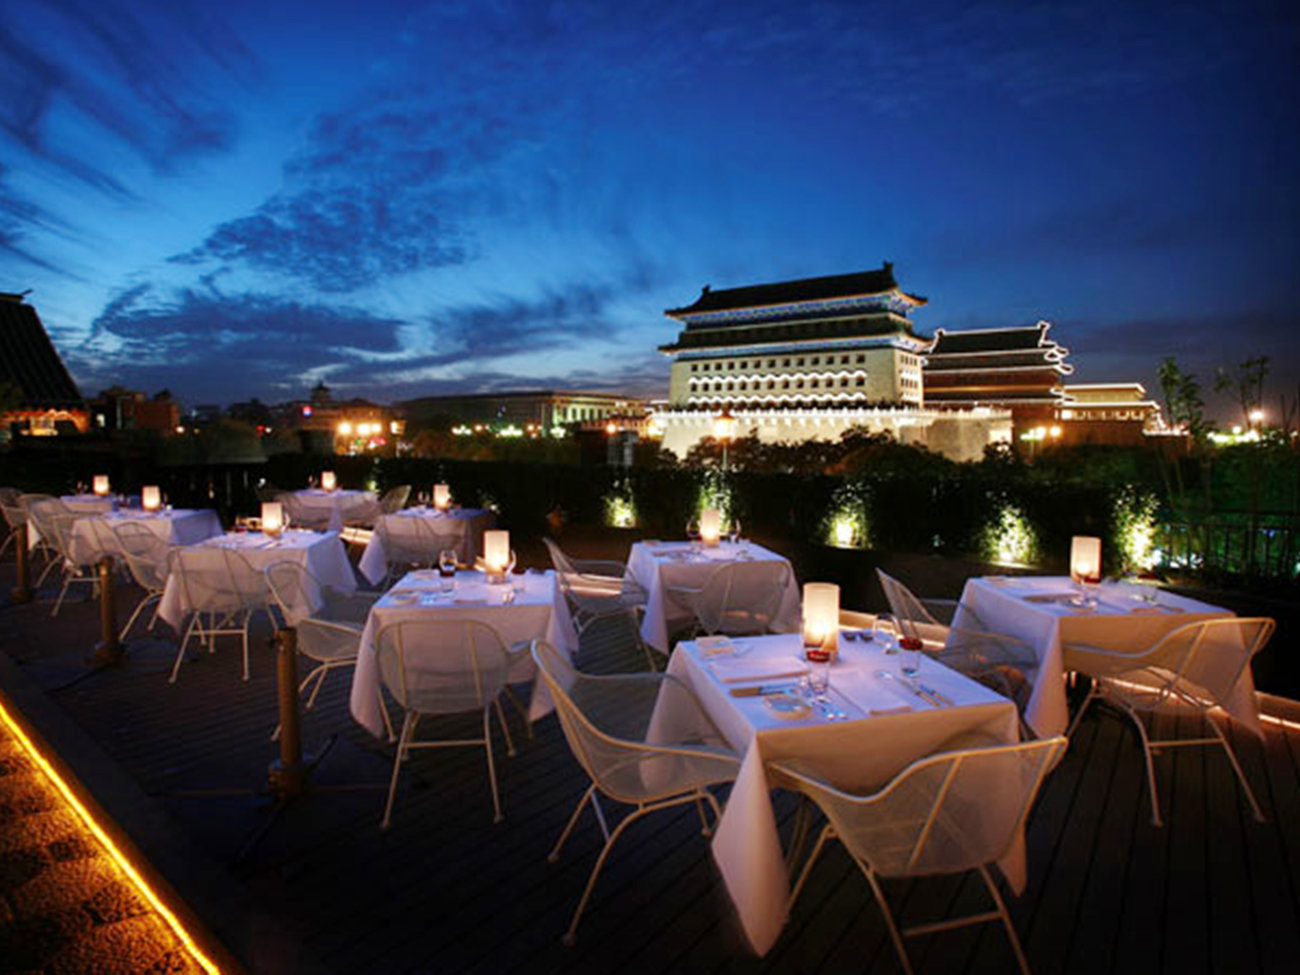 Capital M Restaurant in Beijing